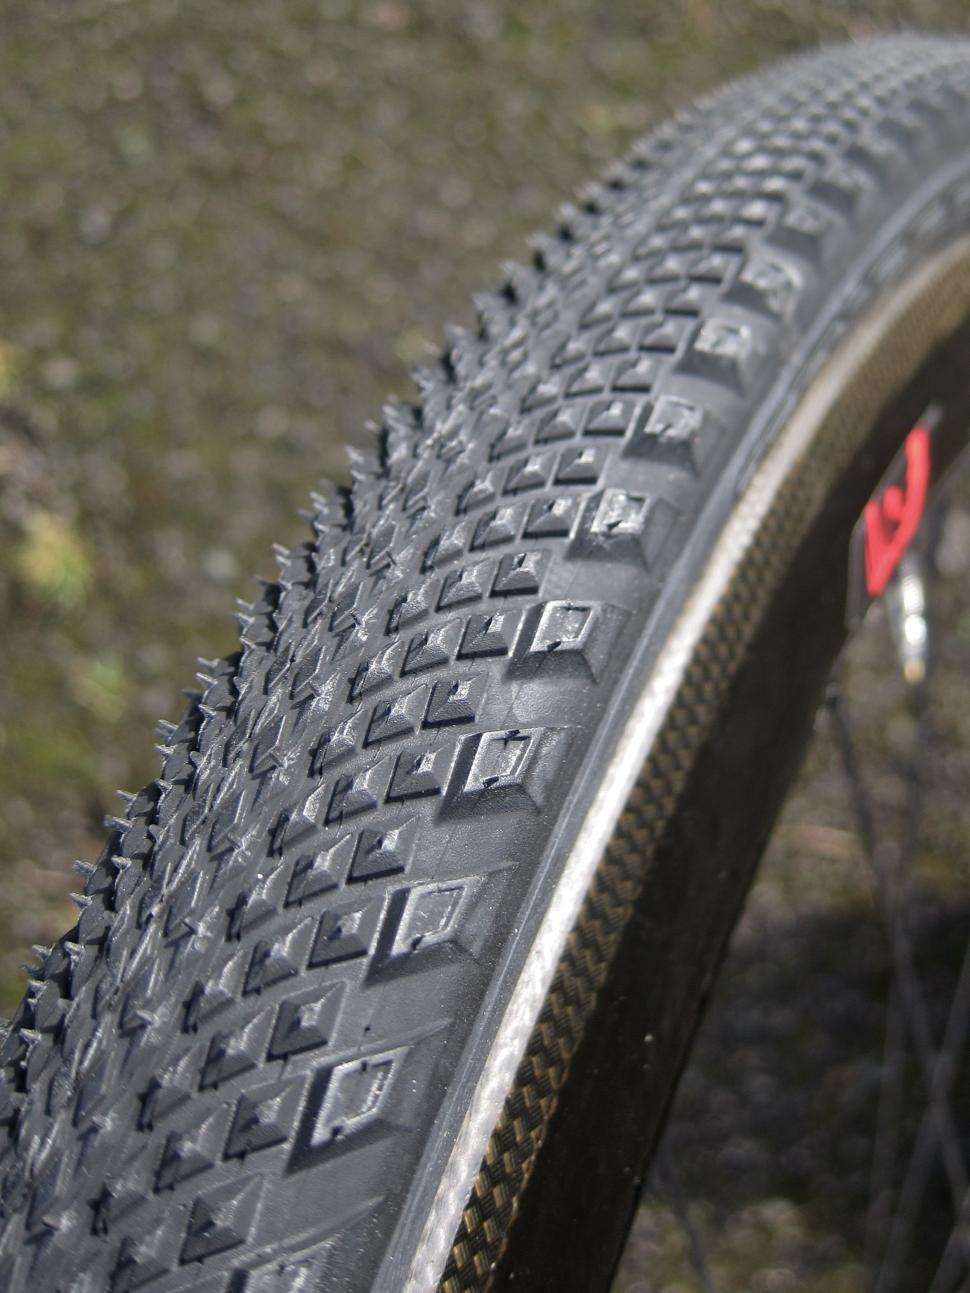 Specialized Trigger Pro 2Bliss Ready 700x38 Tyre - Mounted.jpg